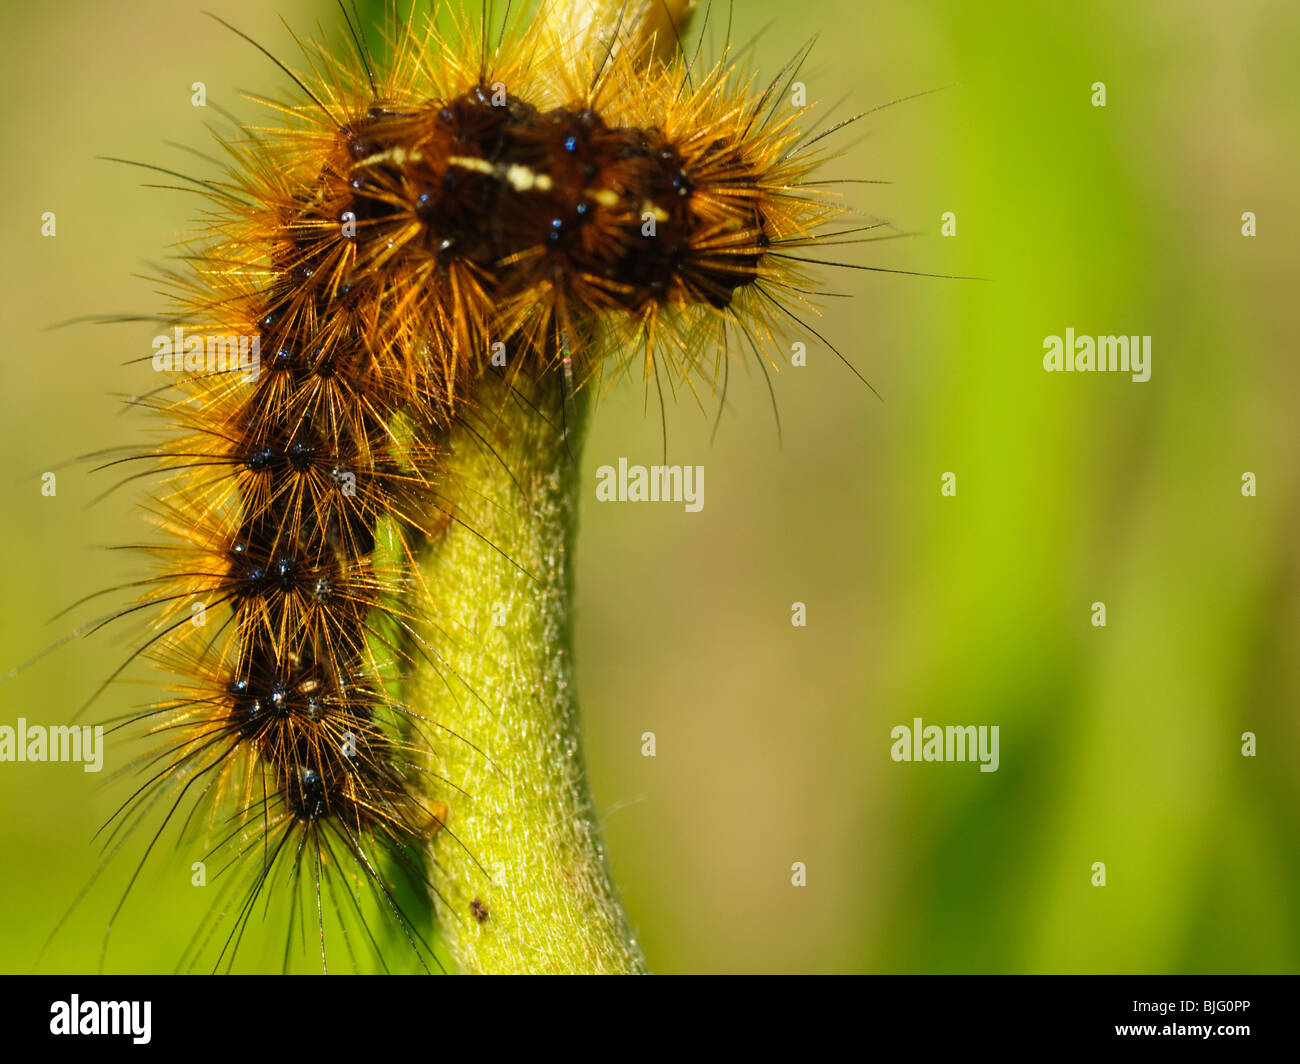 close up of a hairy caterpillar - Stock Image